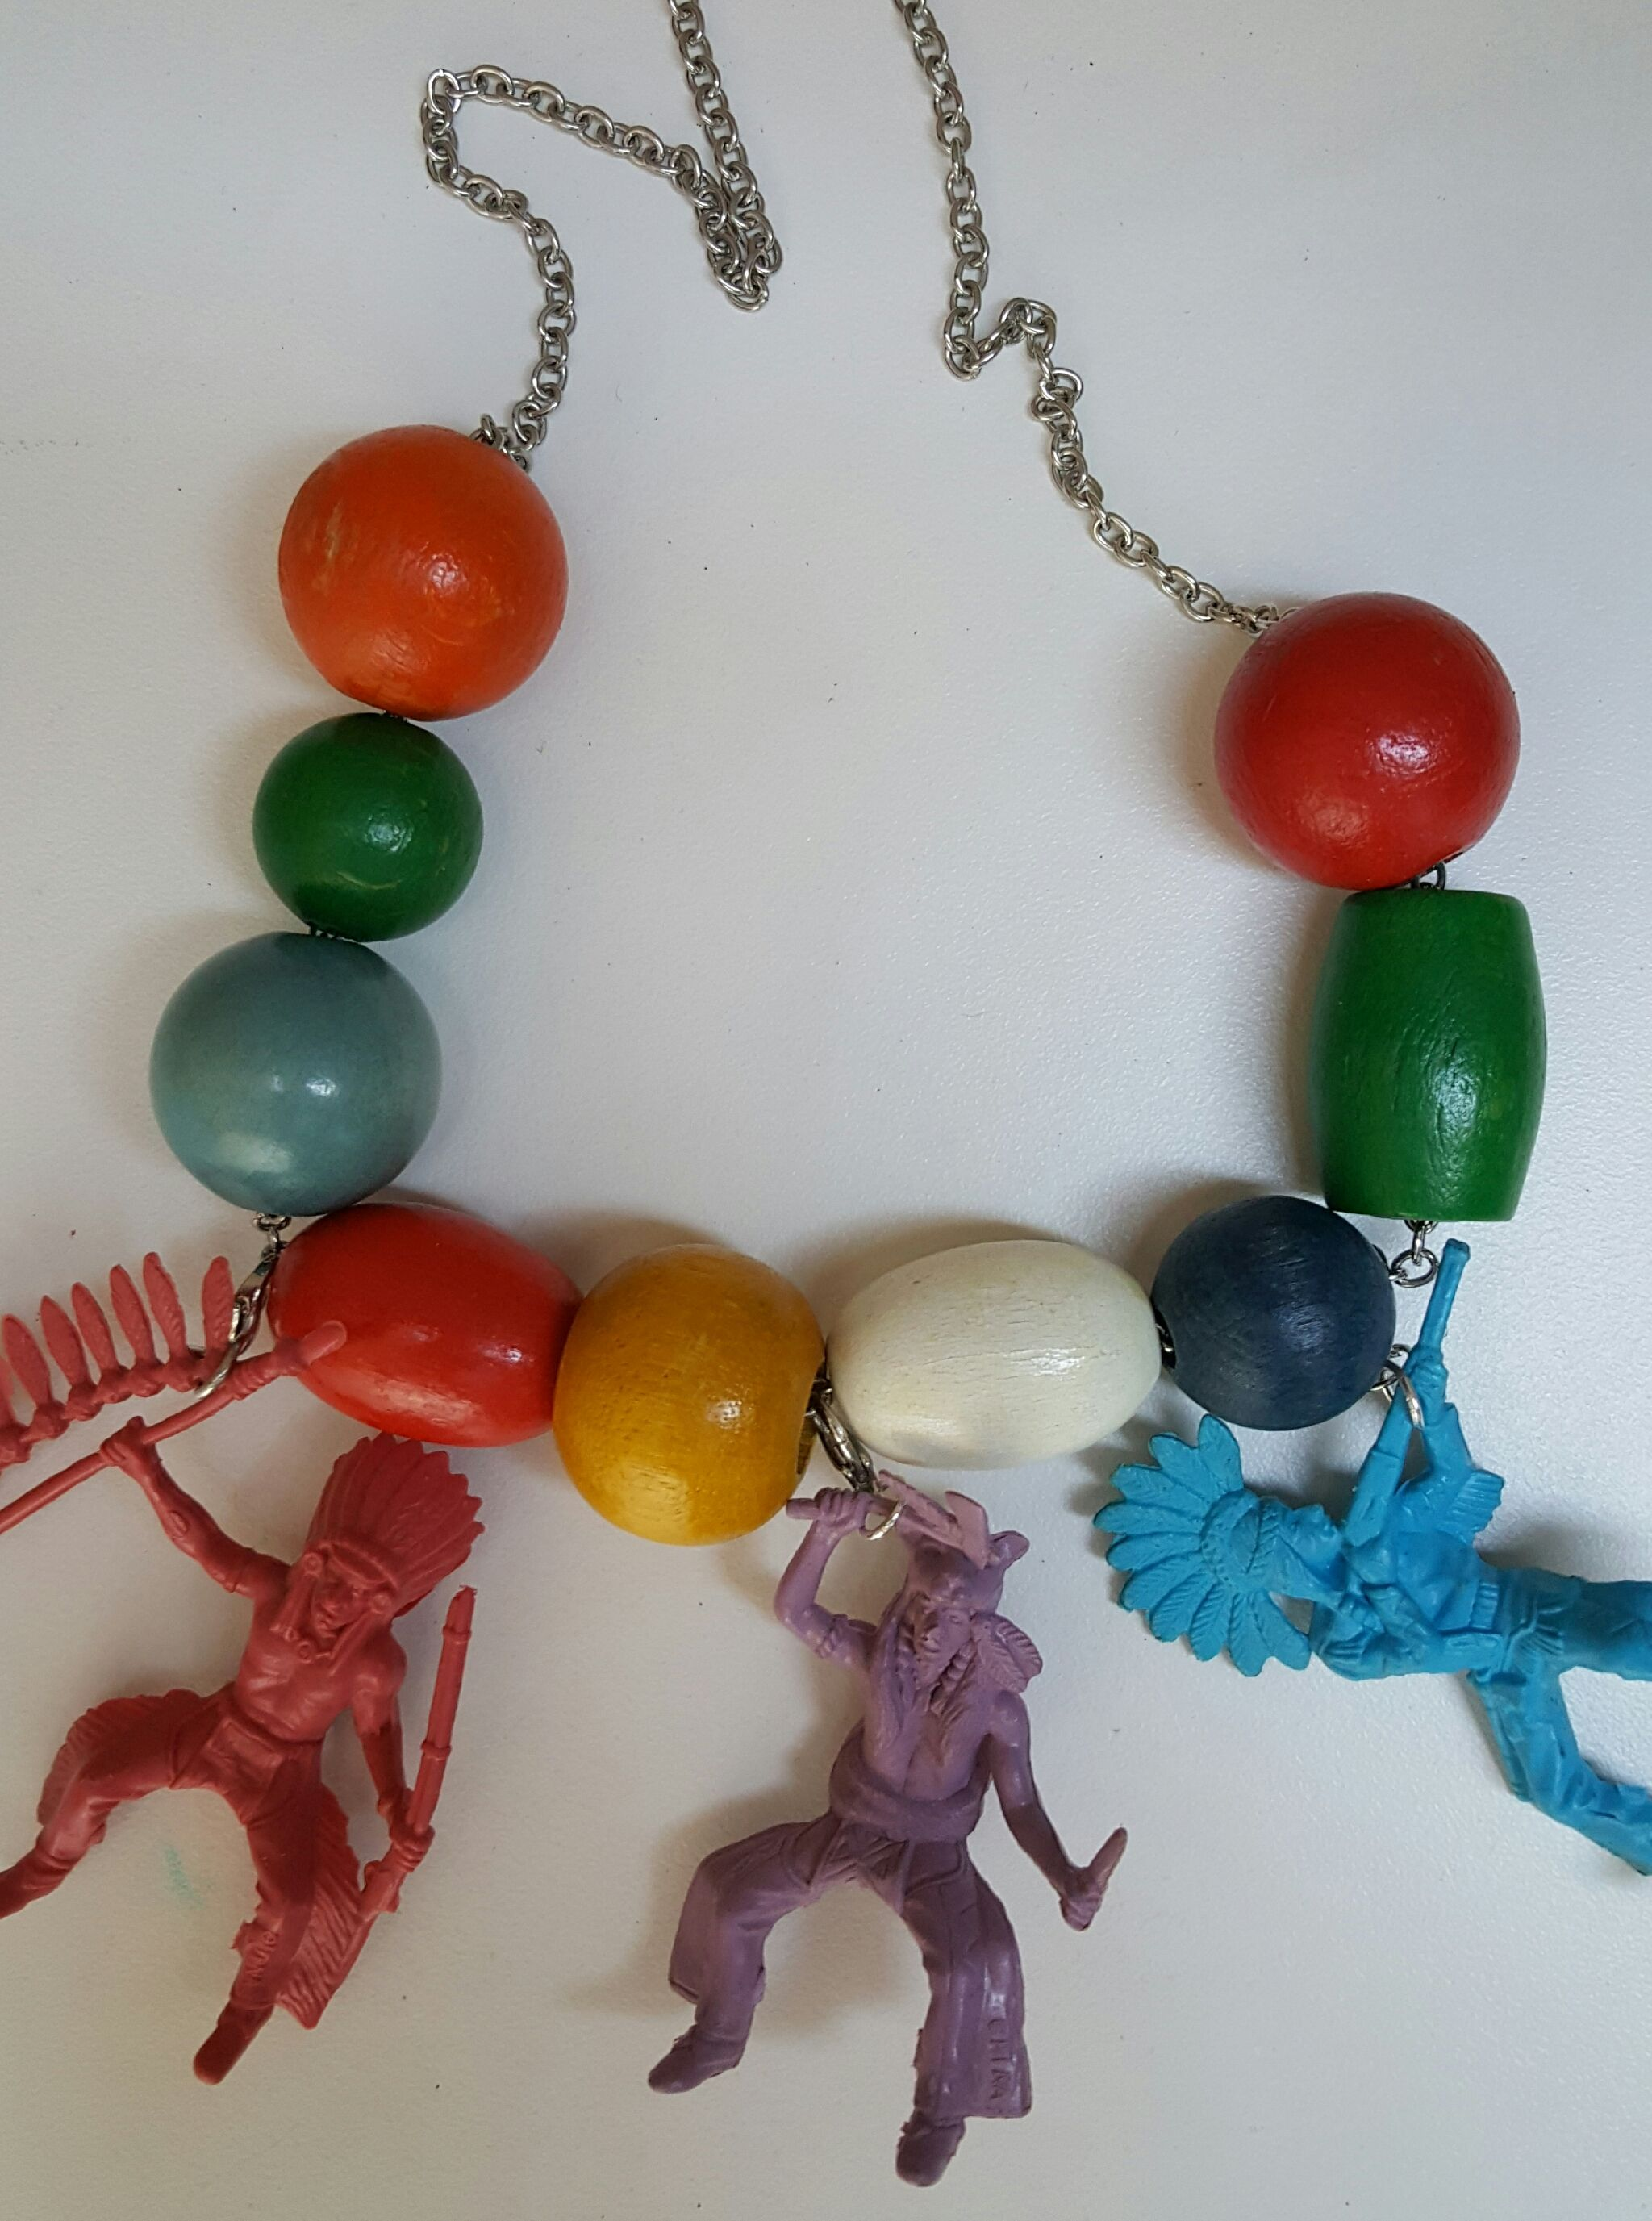 Indians handmadevintage toys 60s and beads